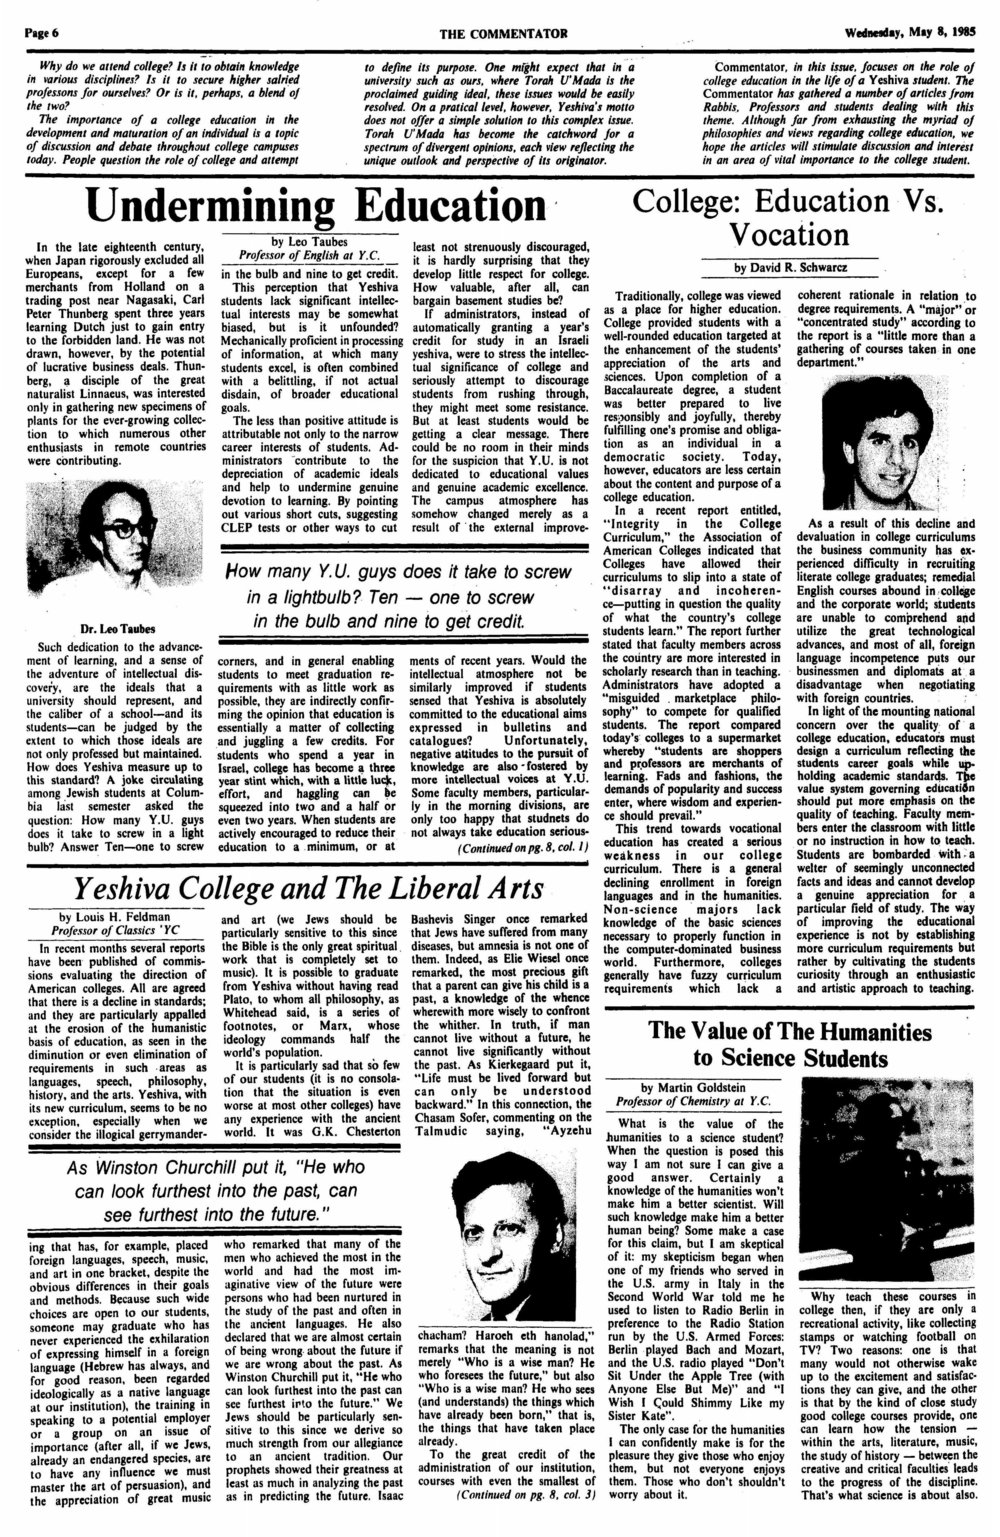 1985.5.8.TC--Yeshiva College and the Liberal Arts_Page_1.jpg